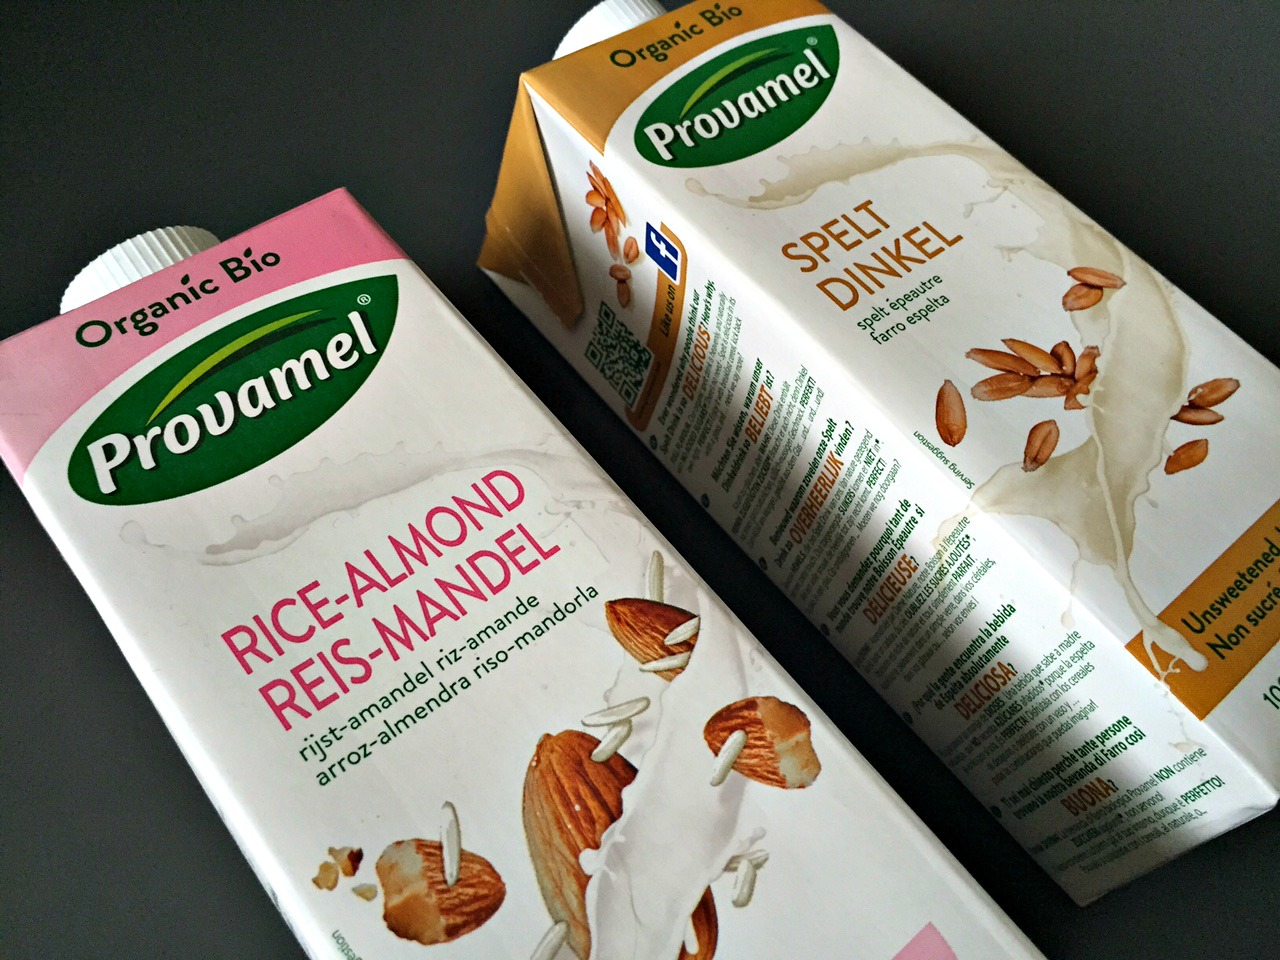 Provamel Rice-Almond drink and Spelt drink